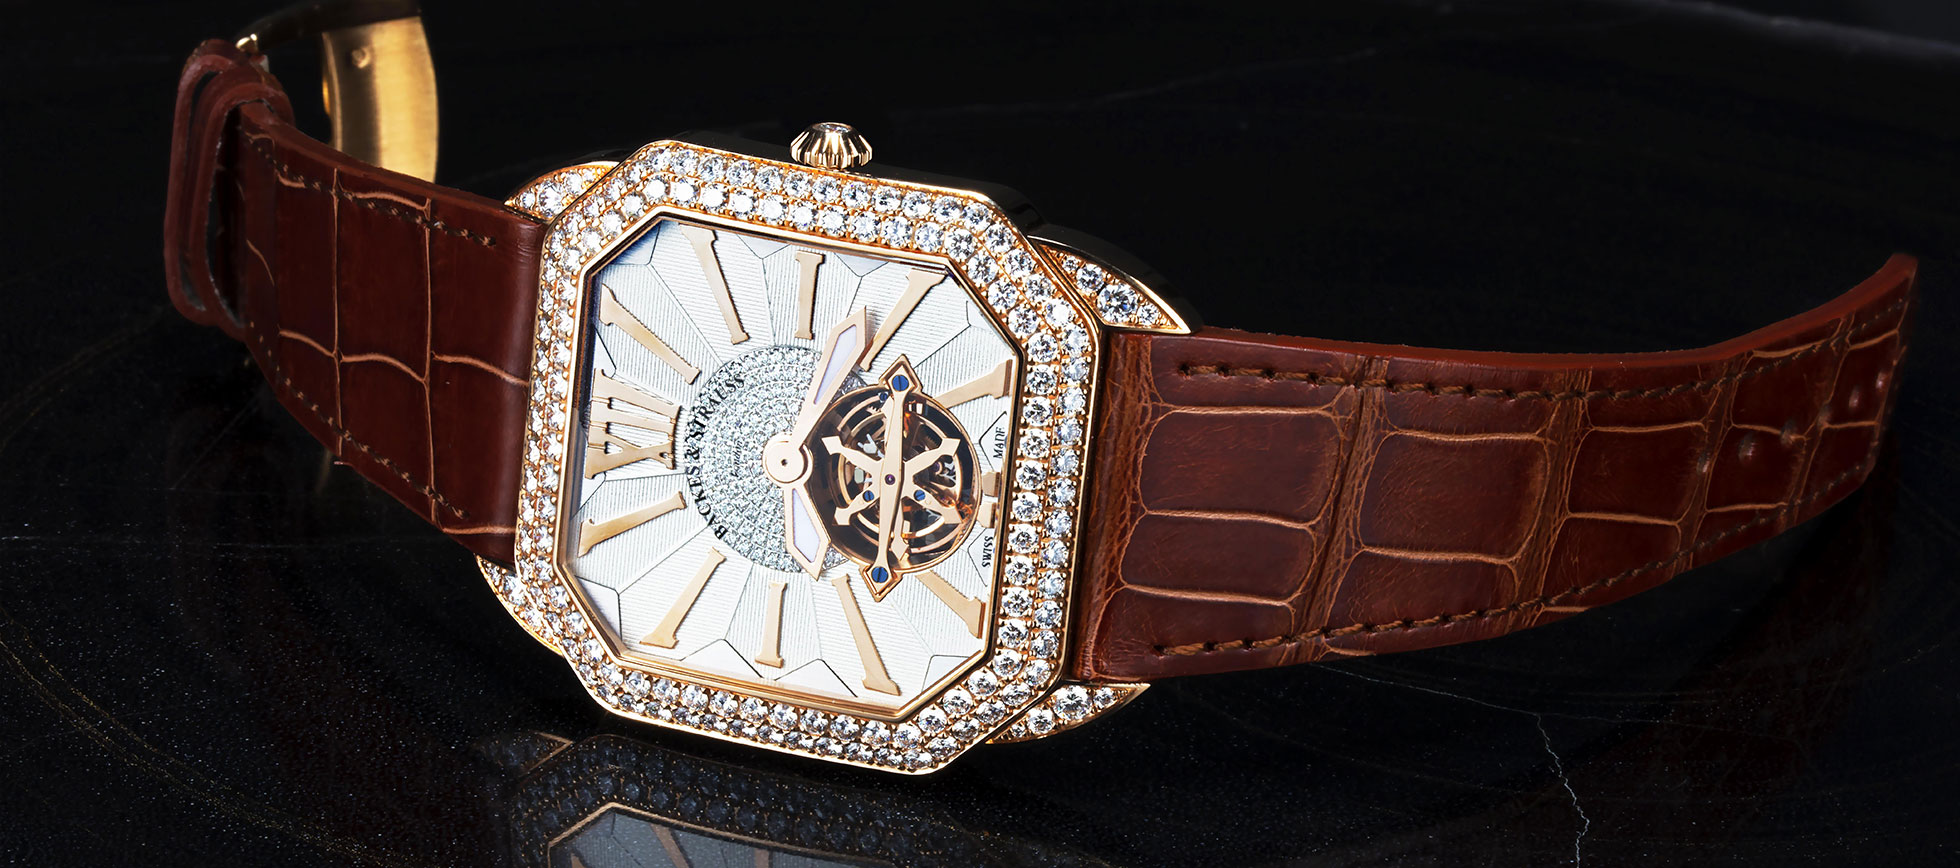 Berkeley Renaissance Duke Tourbillon diamond watch for him